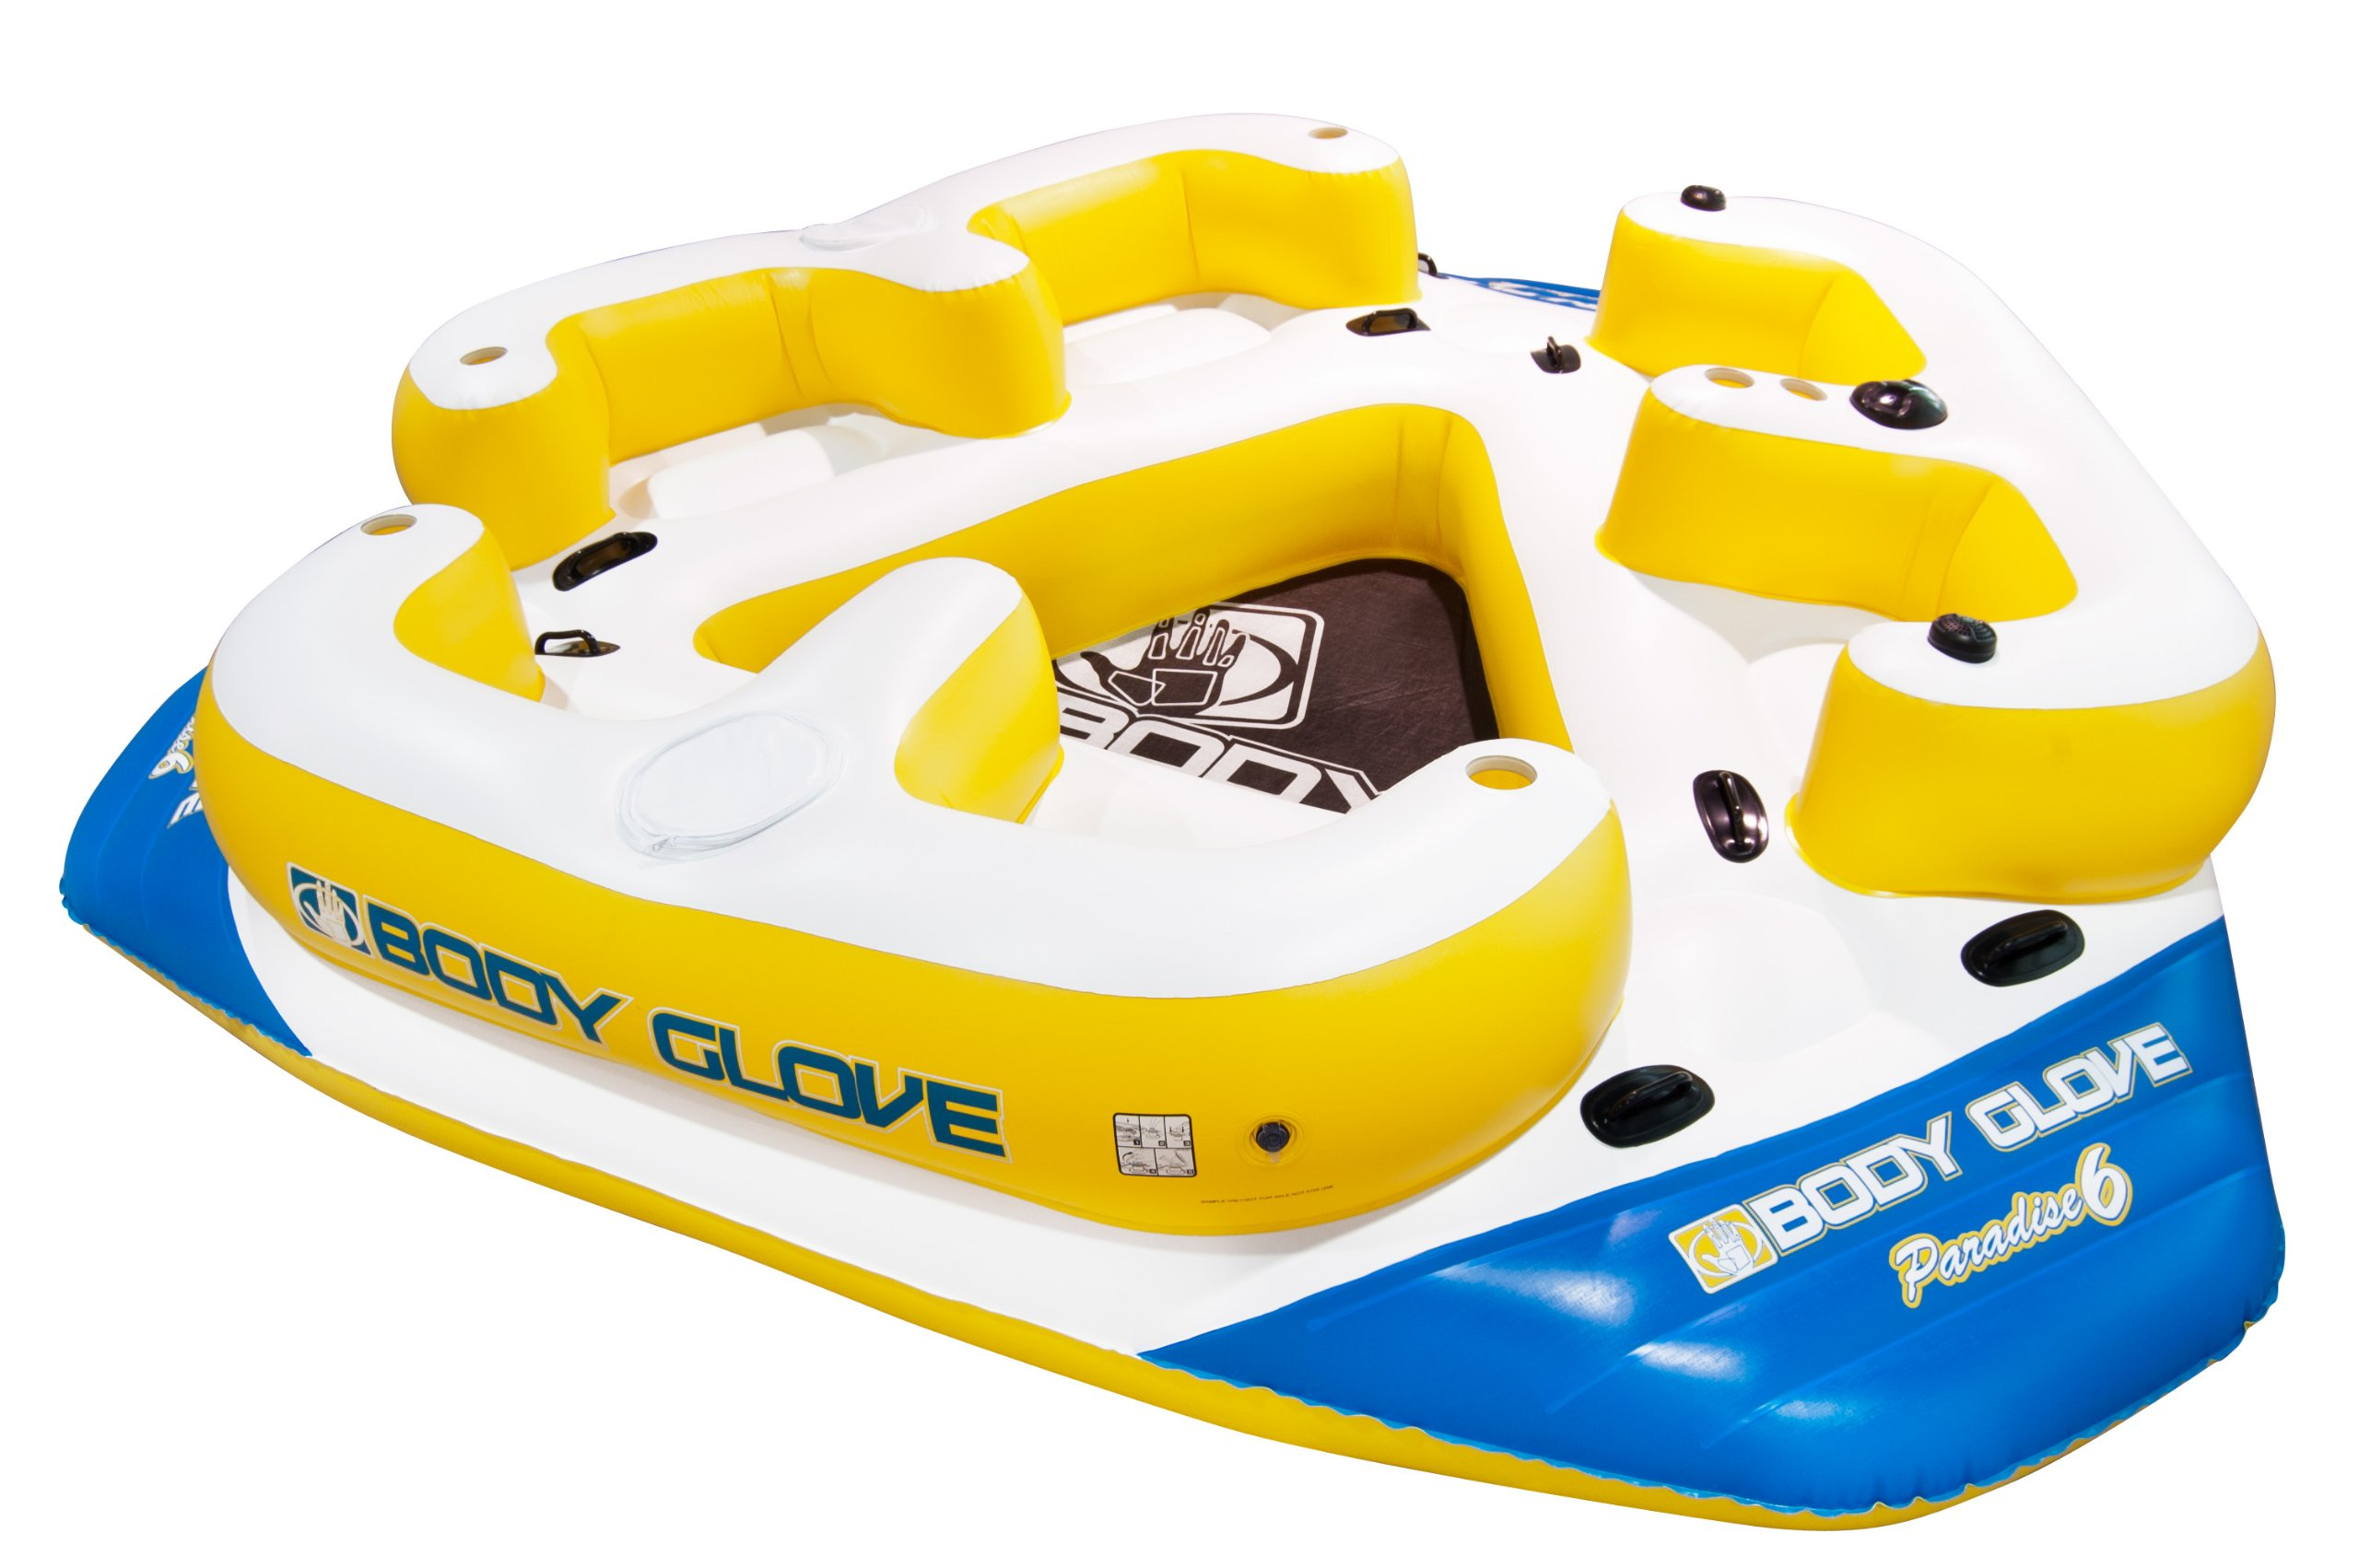 Body Glove Paradise 6 Inflatable Aqua Lounge with Waterproof Speaker System for Lake Relaxation, the party island for 6